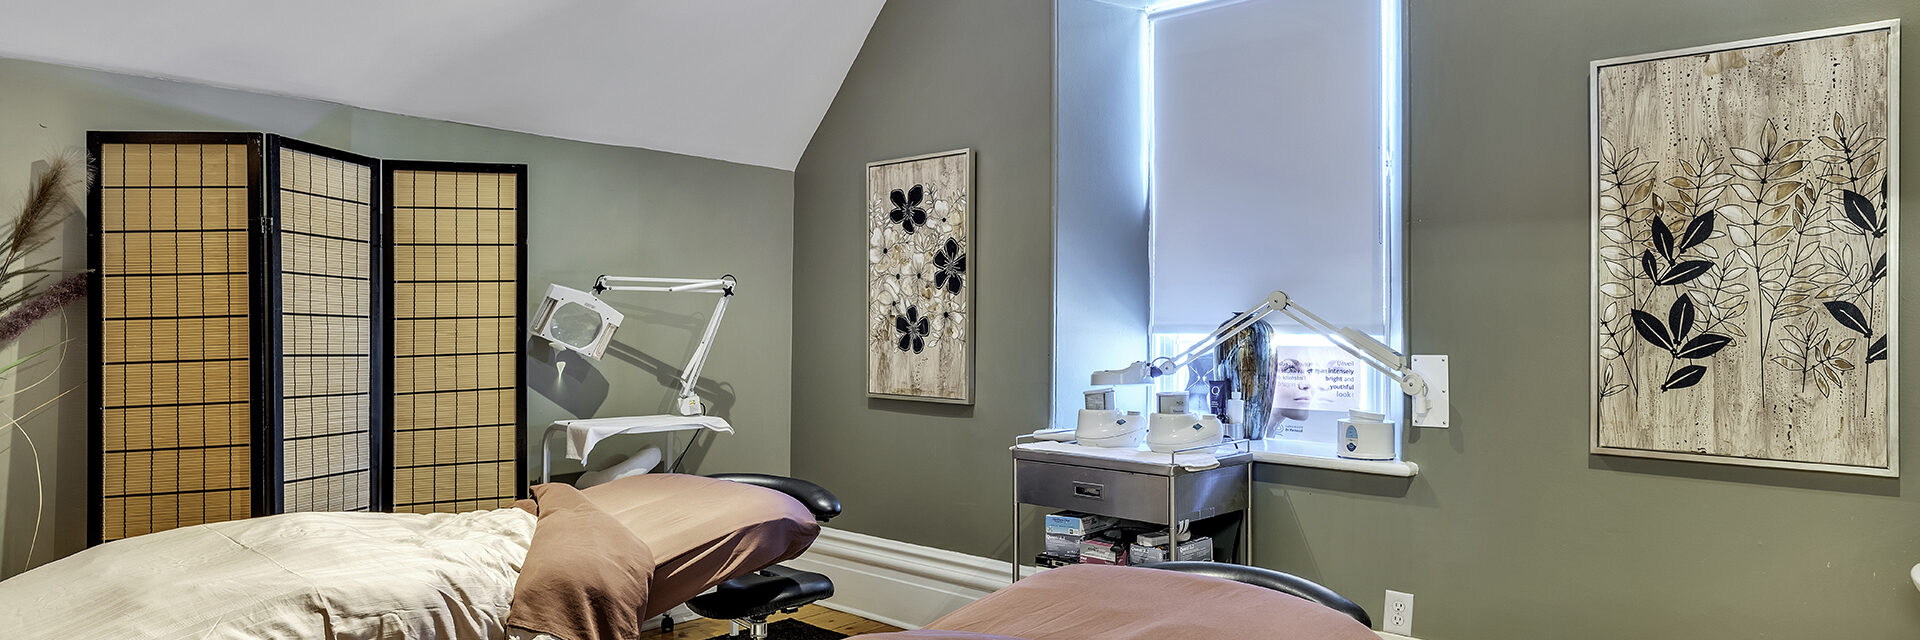 Massage therapy beds at Jask